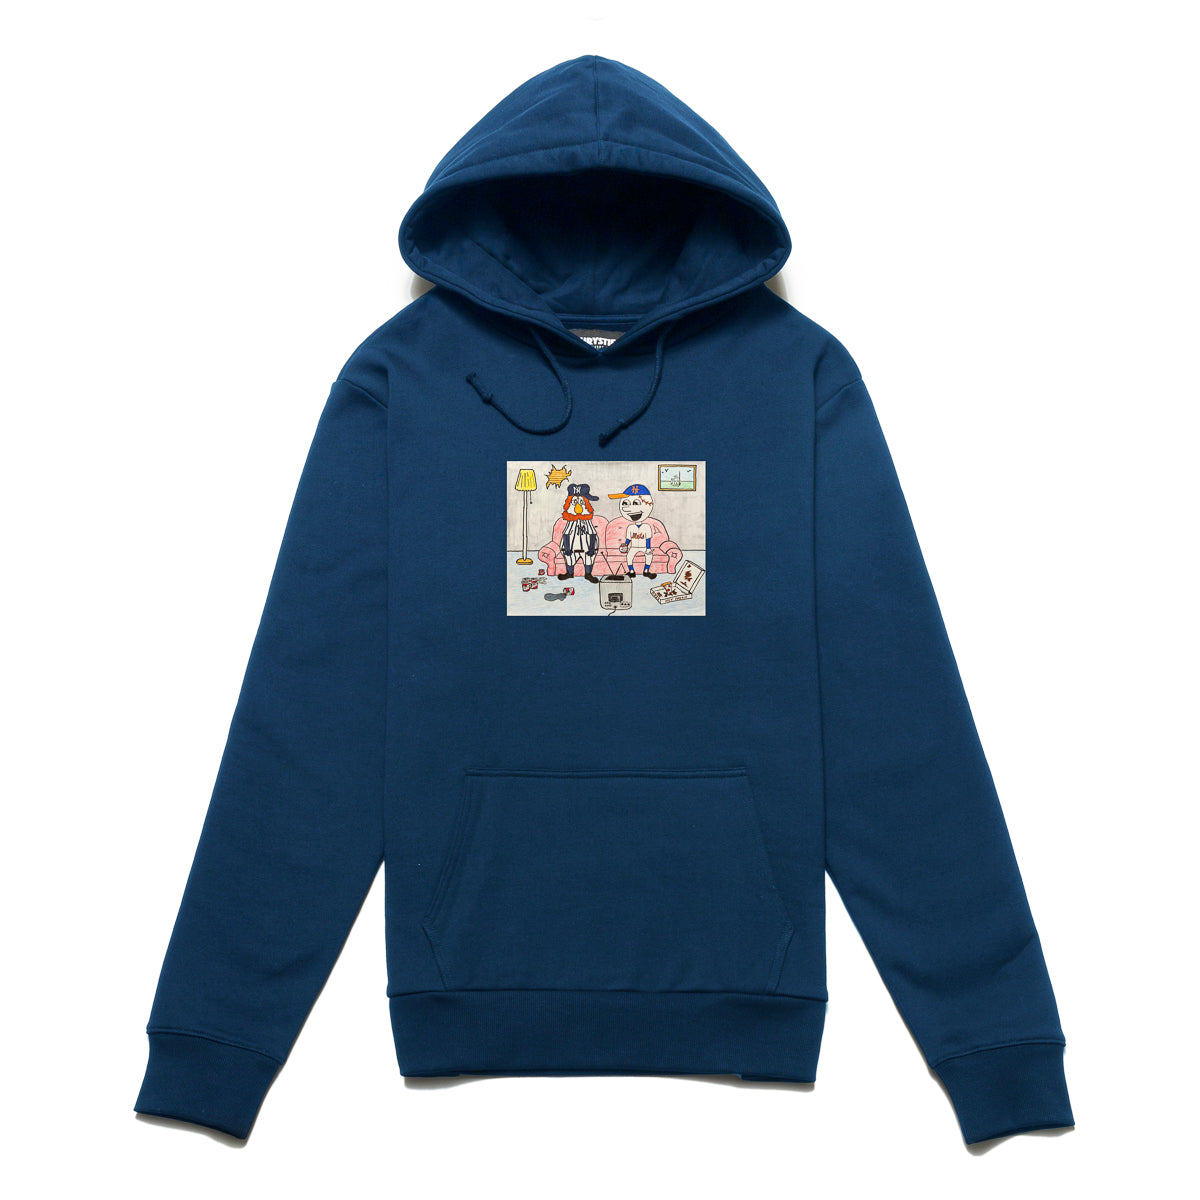 Load image into Gallery viewer, NY KIDS pullover sweater / Navy